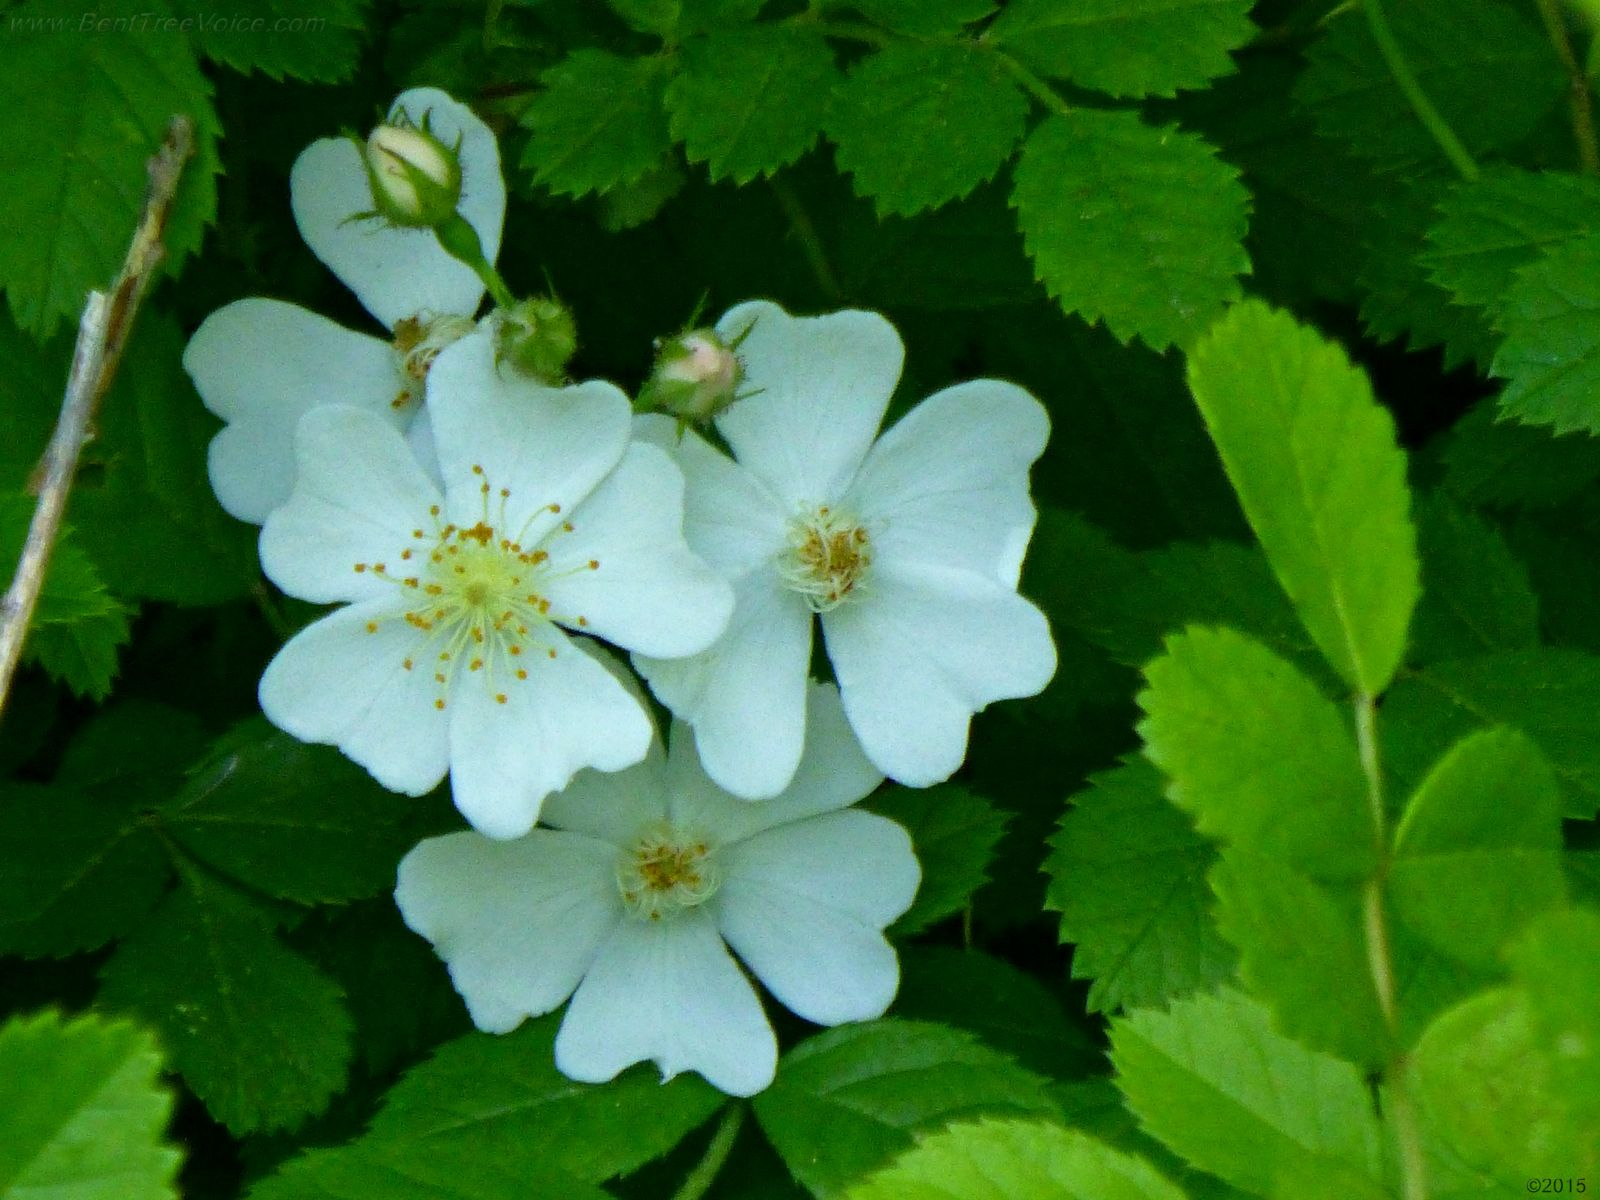 May 5, 2015 - Cherokee Rose blooming in Bent Tree